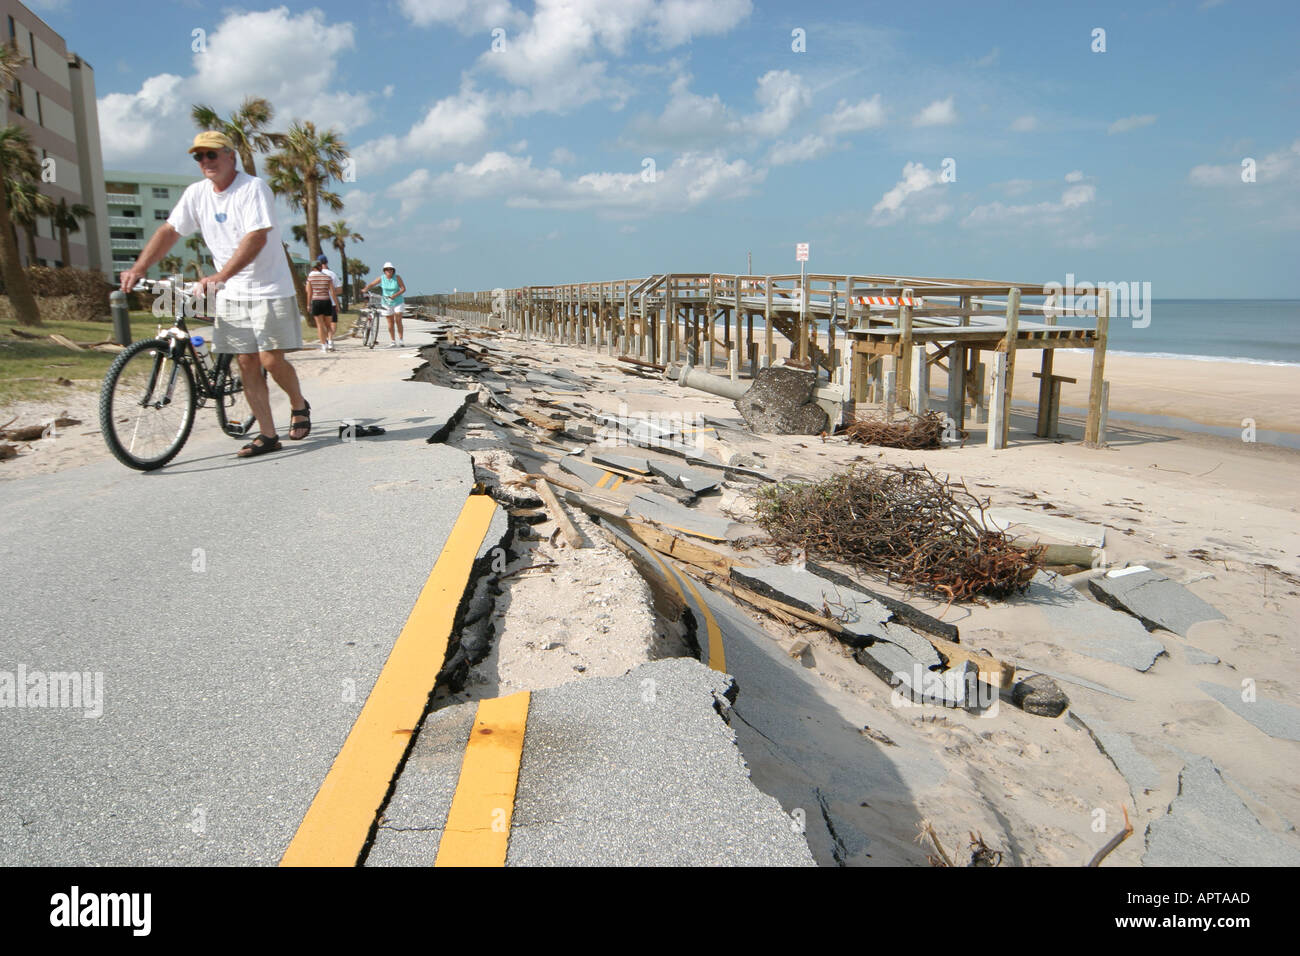 Vero Beach Florida Hurricane Jeanne Damage Missing Road Wave Erosion Tidal Surge